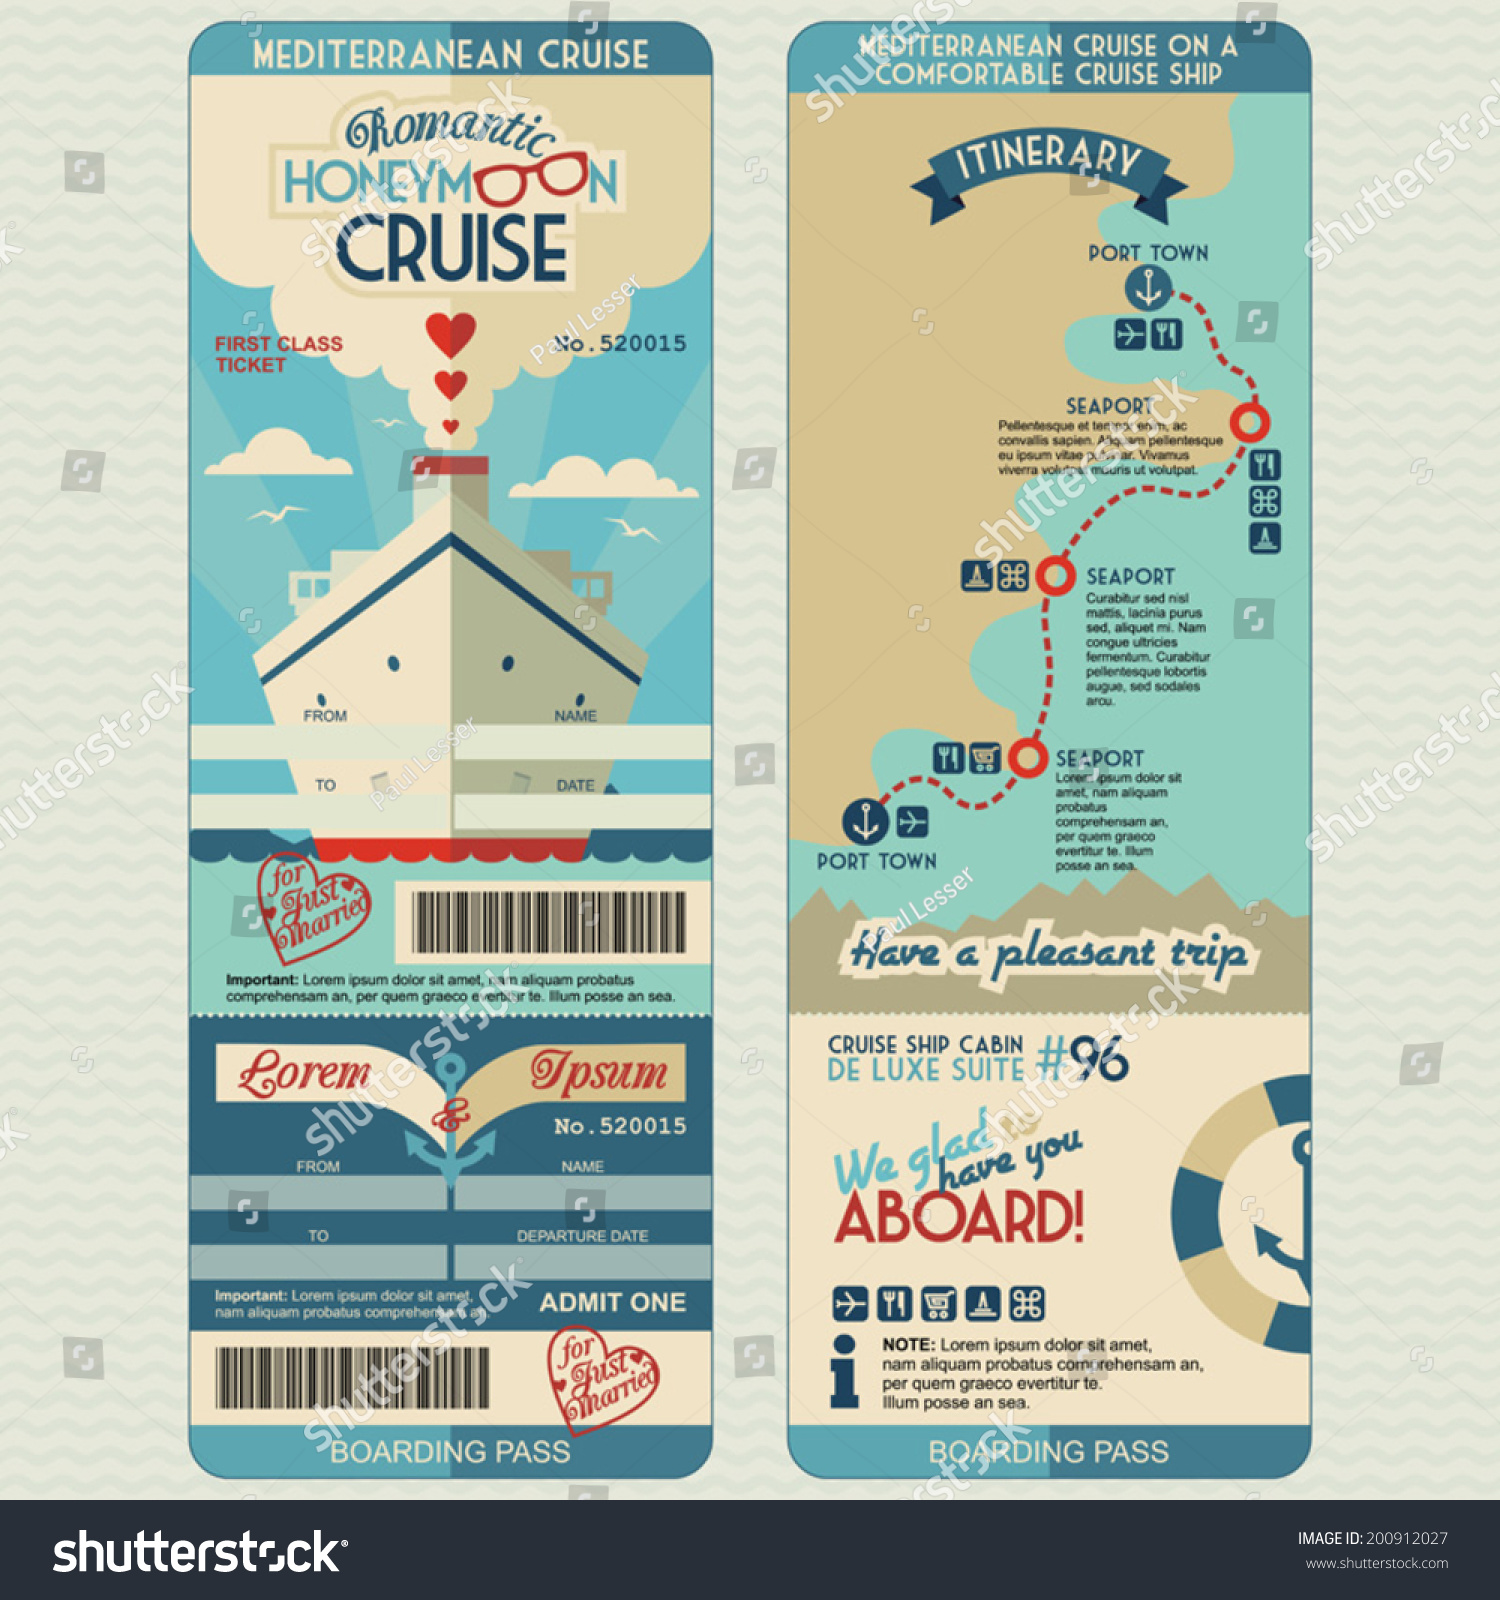 Honeymoon Cruise Boarding Pass Just Married Vector 200912027 – Cruise Itinerary Template